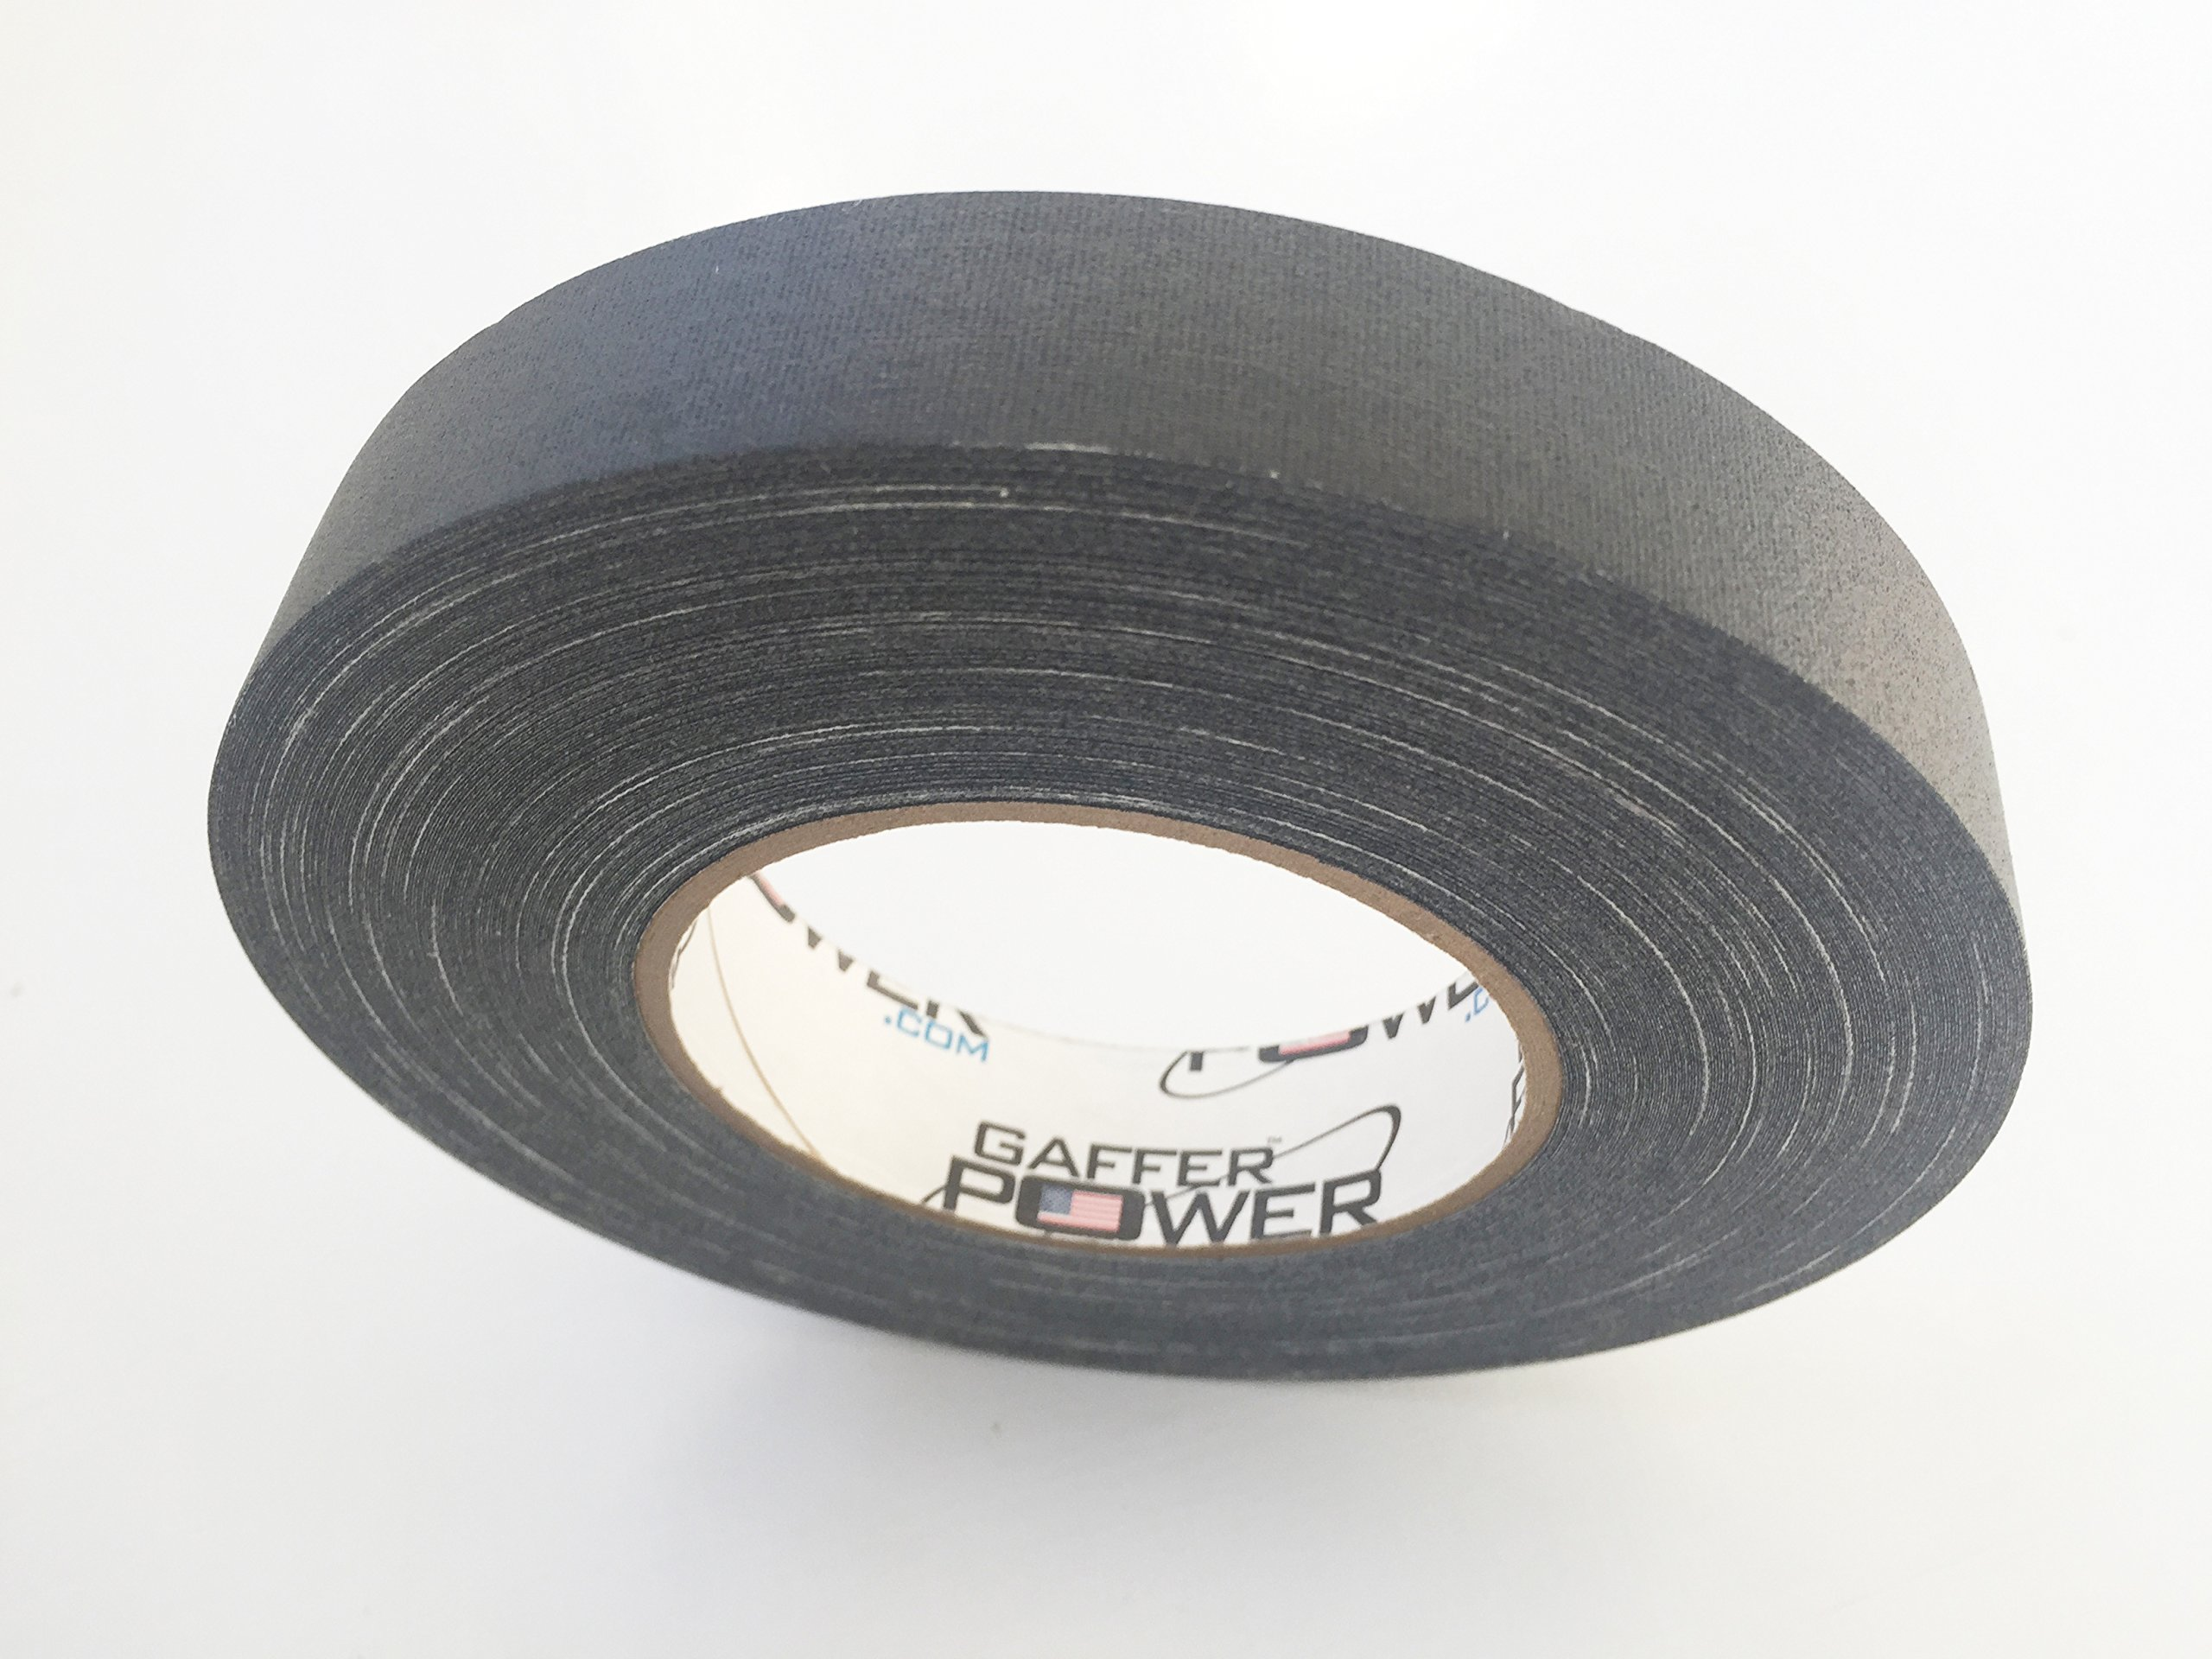 Professional Premium Grade Gaffer Tape - BLACK 1 In x 60 Yds - Heavy Duty Pro Gaff Tape - Secures Cables, Holds Down Wires Leaves No Sticky Residue Easy to Tear, Multipurpose, Better Than Duct Tape by Gaffer Power (Image #5)